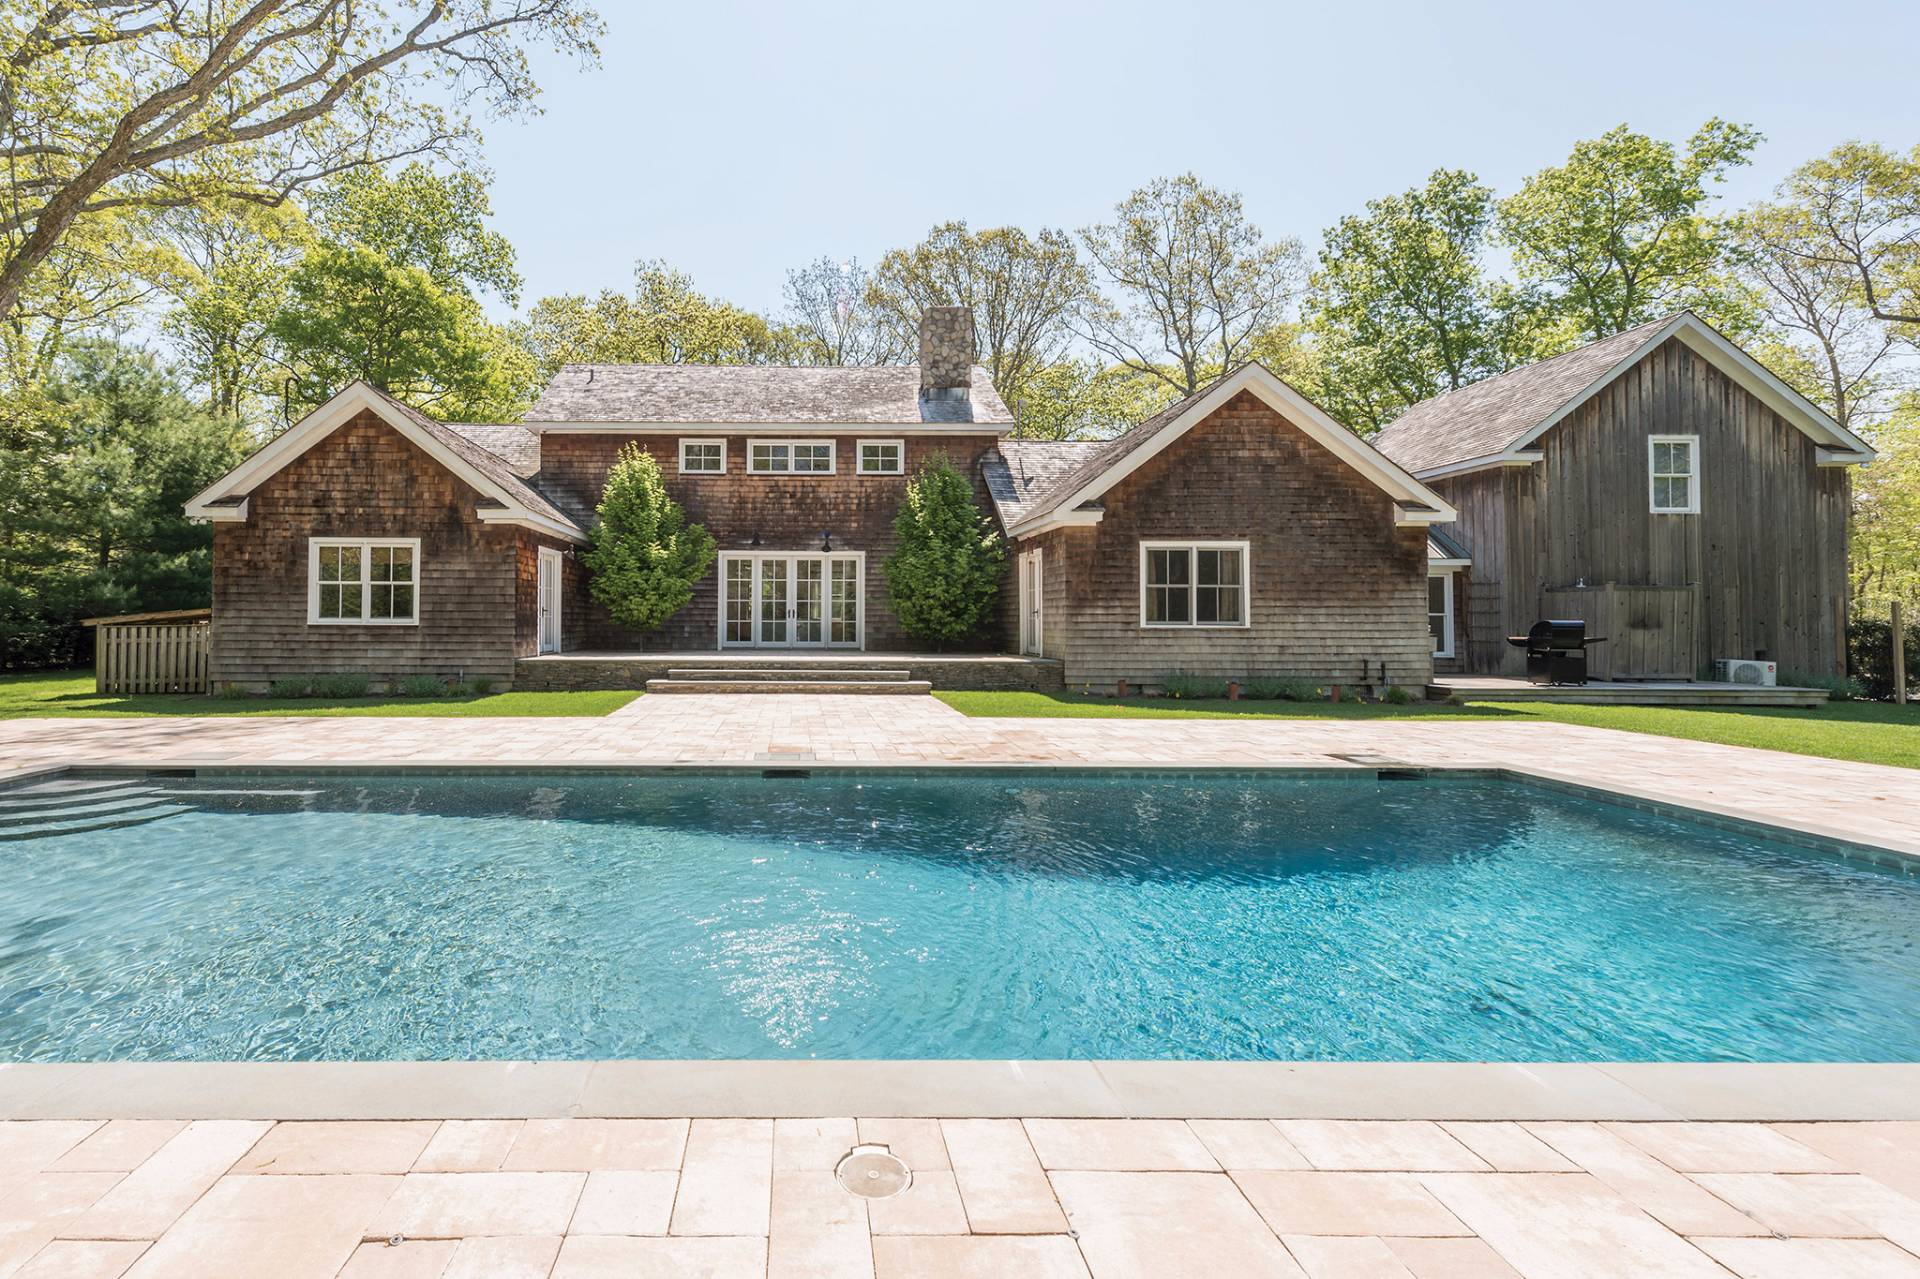 Single Family Home for Sale at Gracious Home On 1.9+/- Acres 2 Great Oak Way, East Hampton, New York